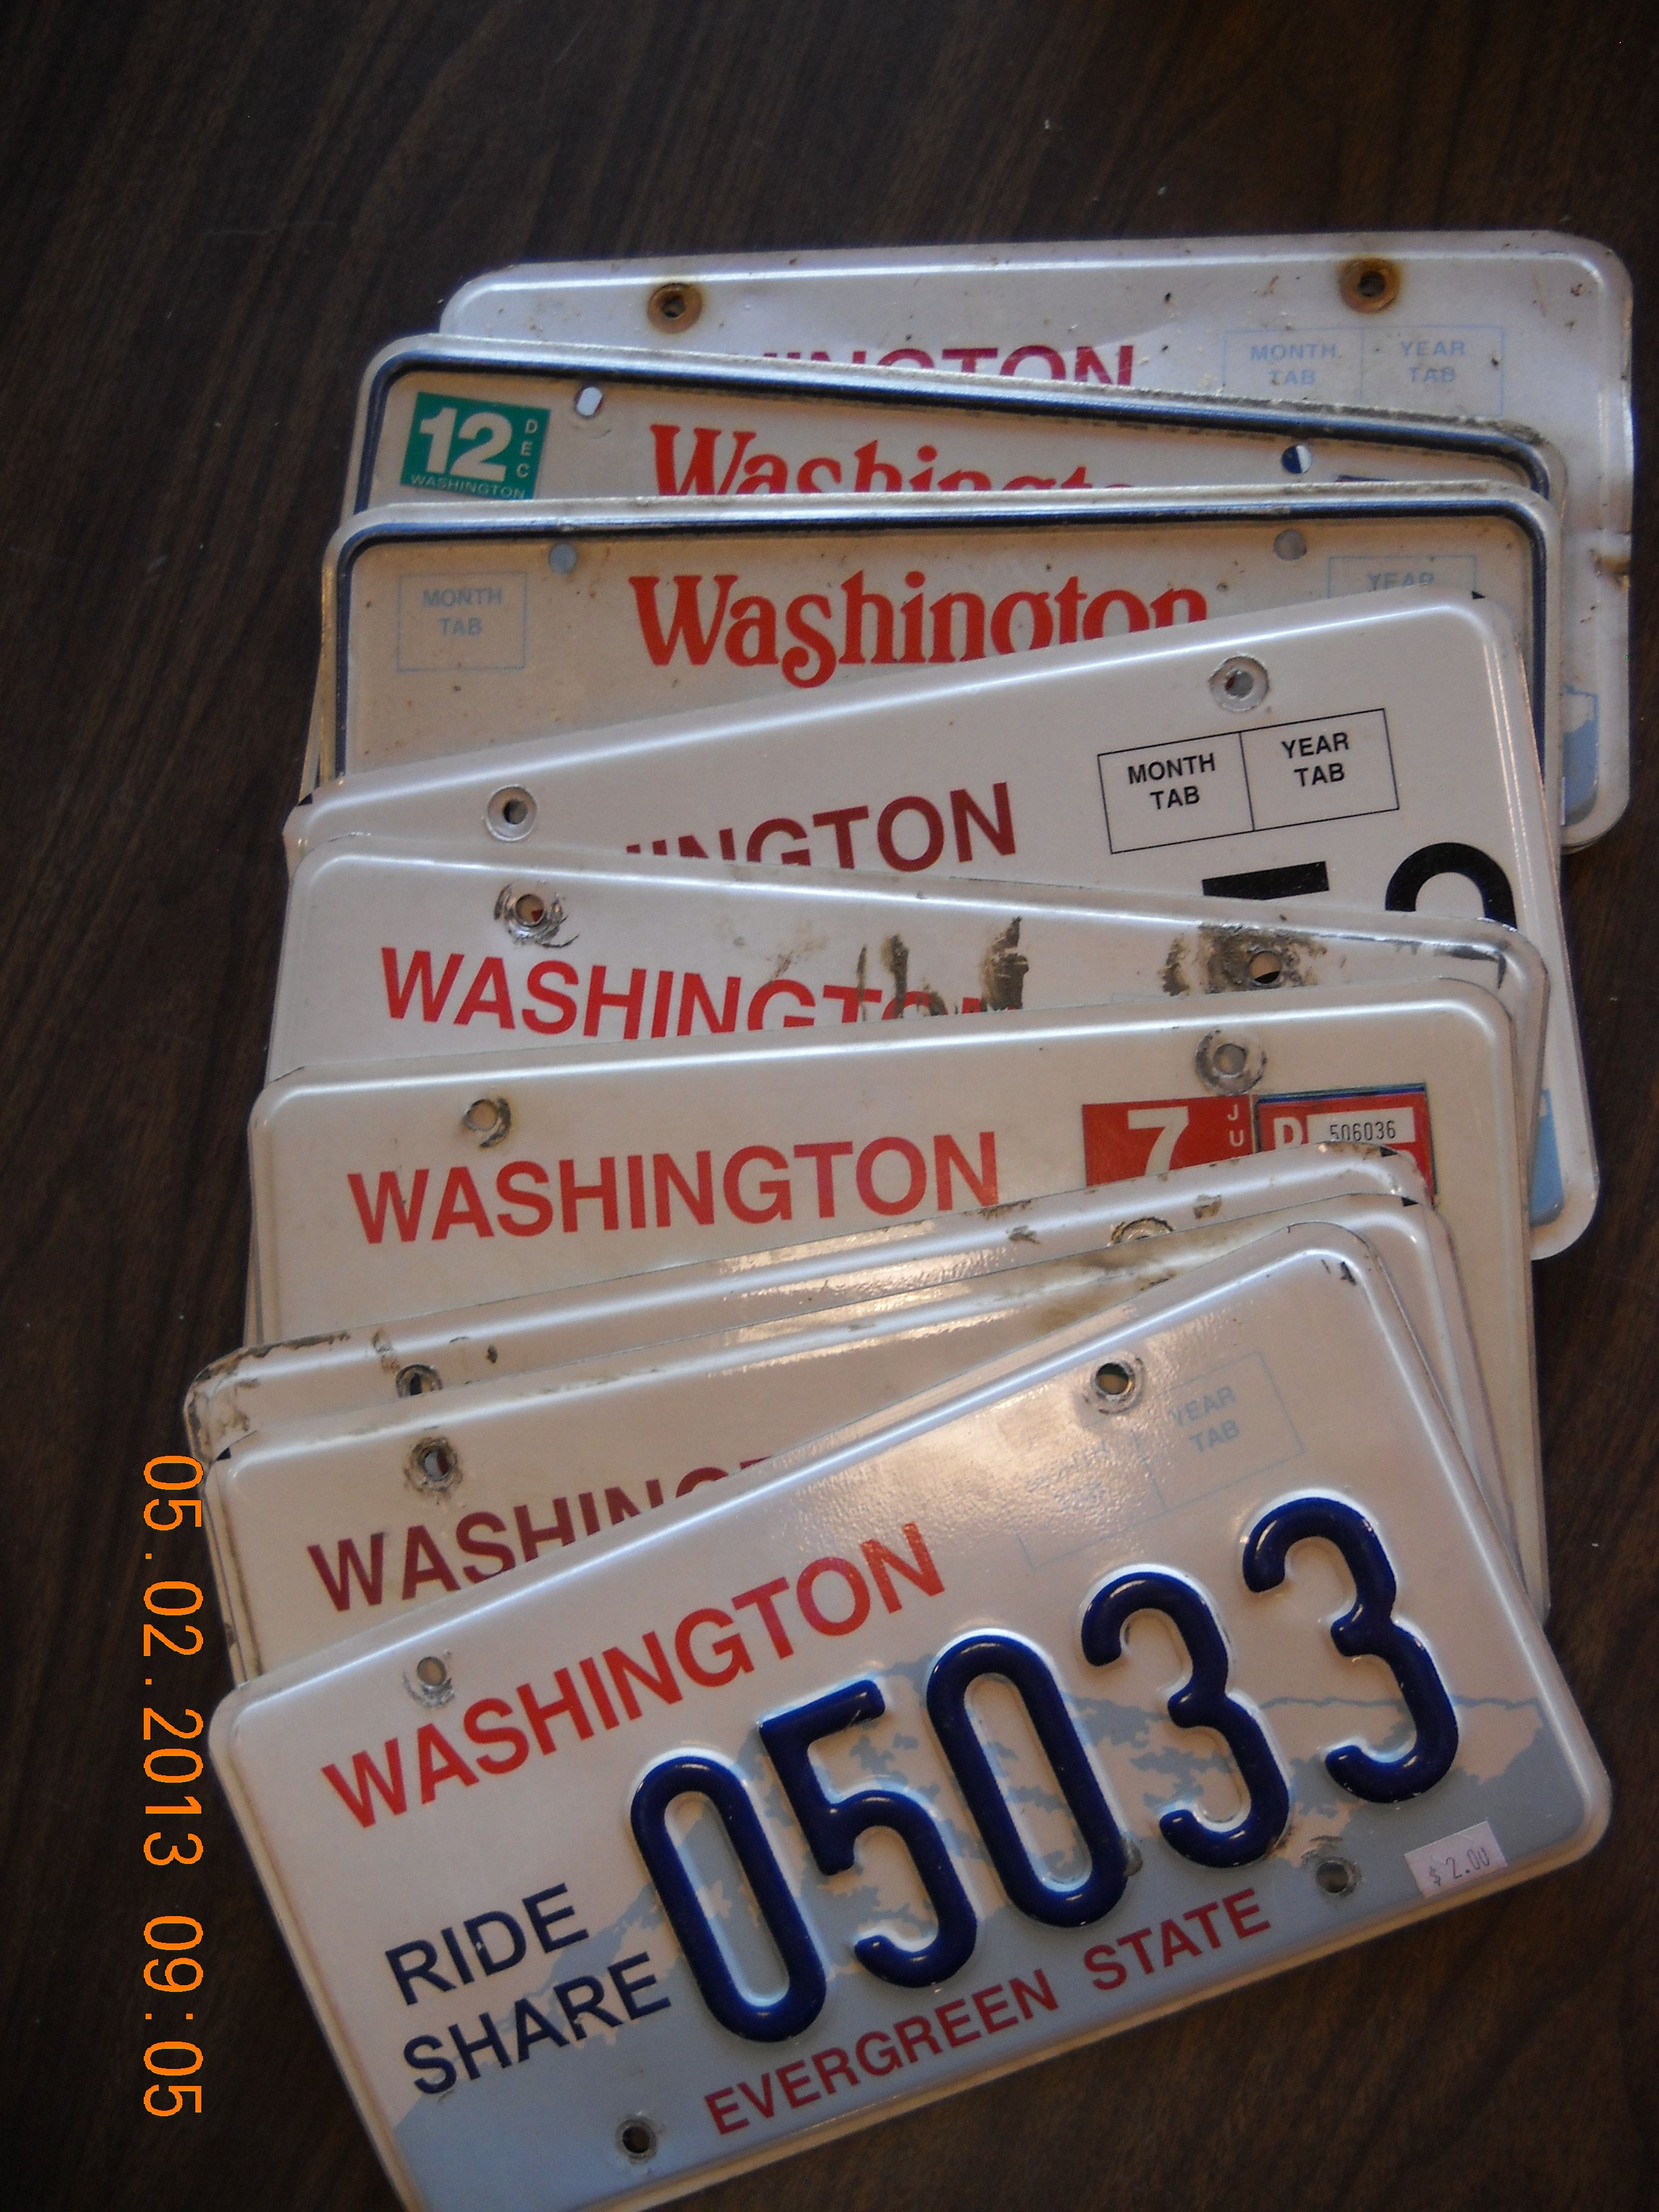 A recent history of Washington state license plates | The Habitat ...